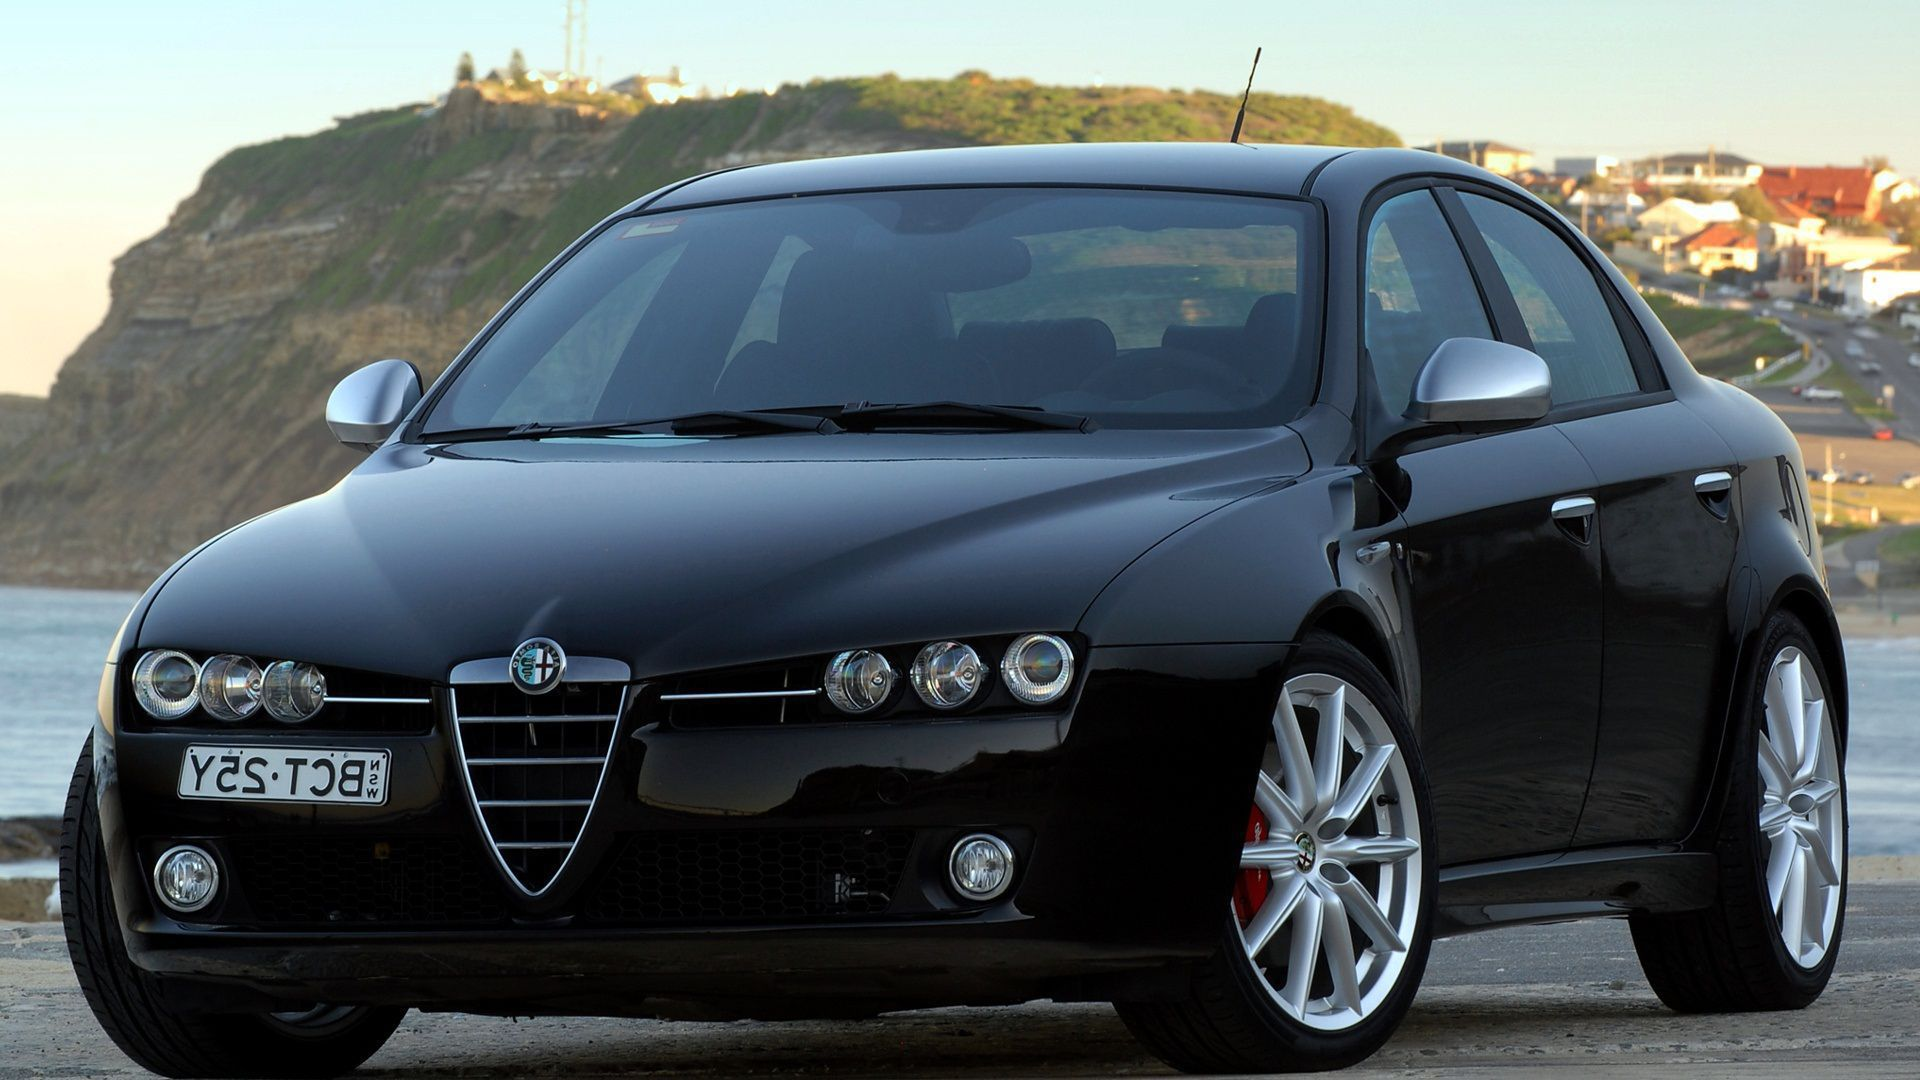 Alfa Romeo Brera HD Wallpaper